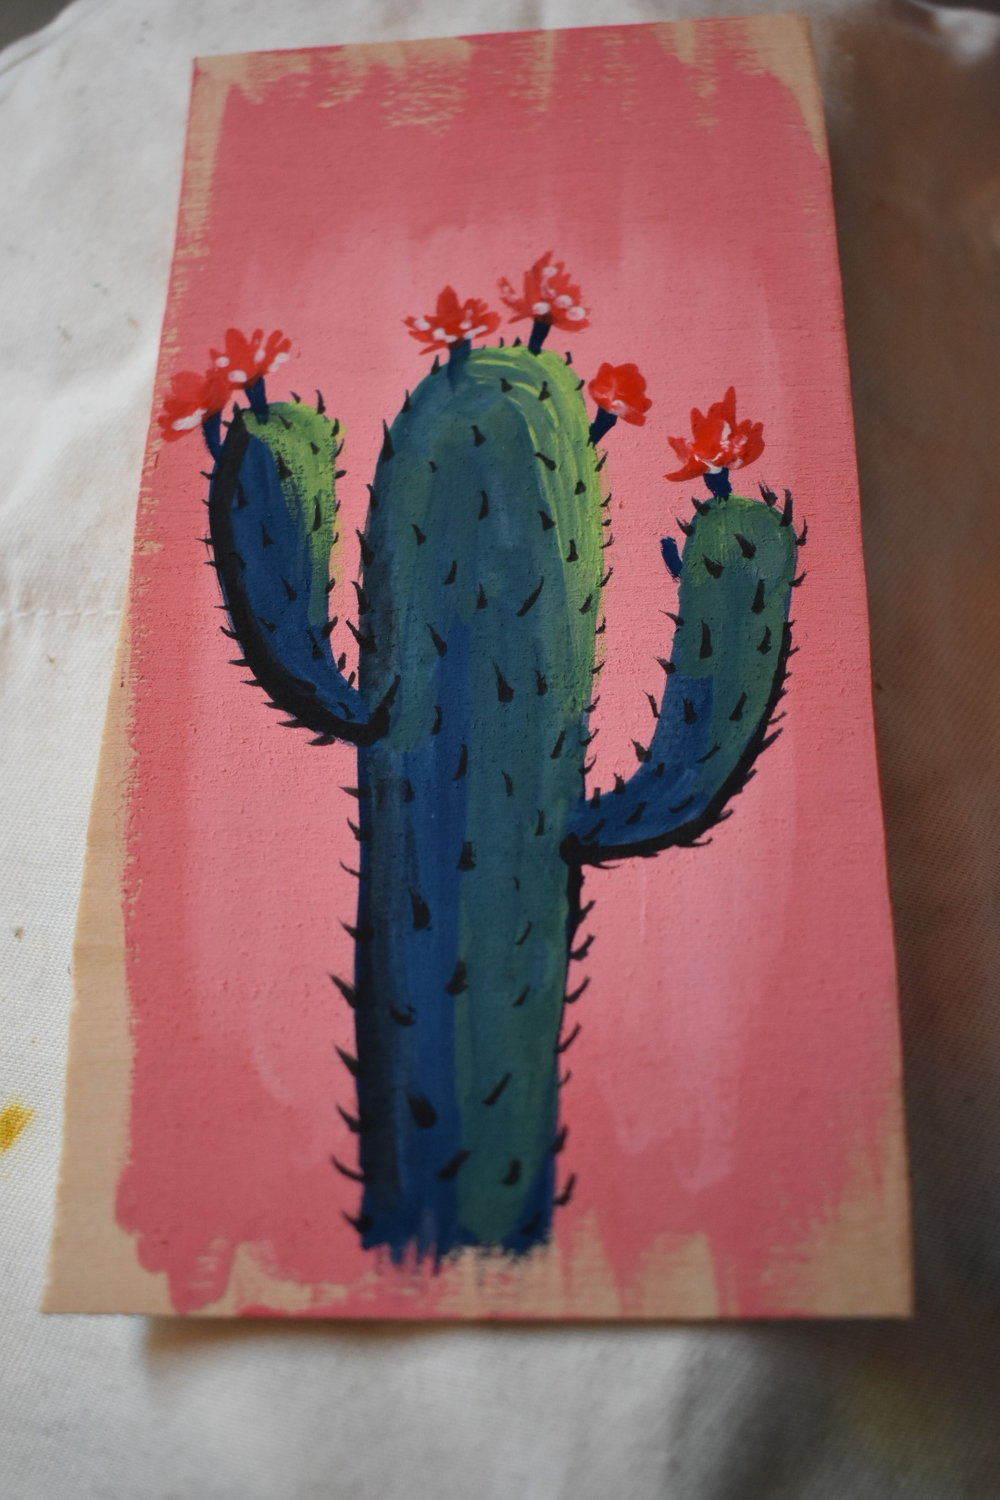 """2016 Goache on wood. Size is about 4""""x3"""". Painted to be sold at an outdoor market."""